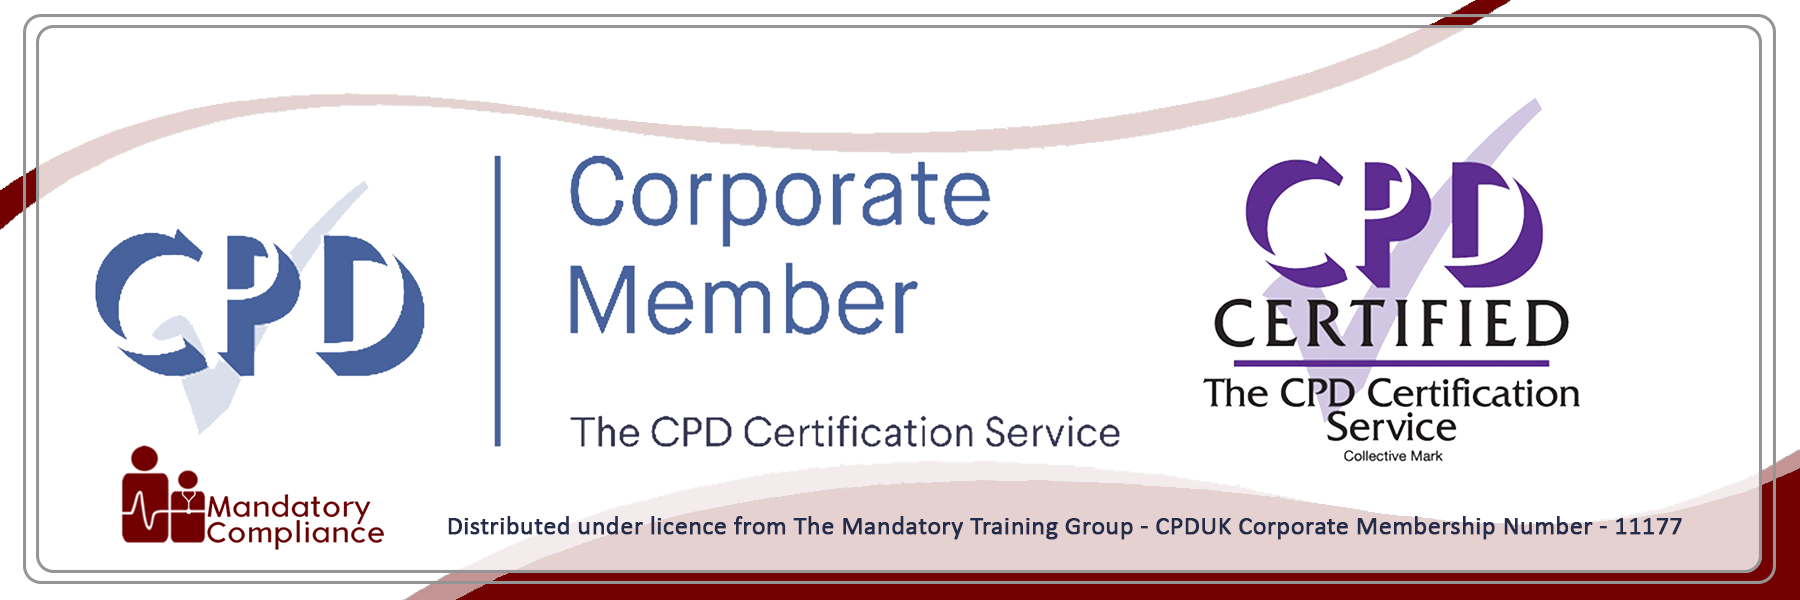 Event Planning - Online Training Course - CPDUK Accredited - Mandatory Compliance UK -